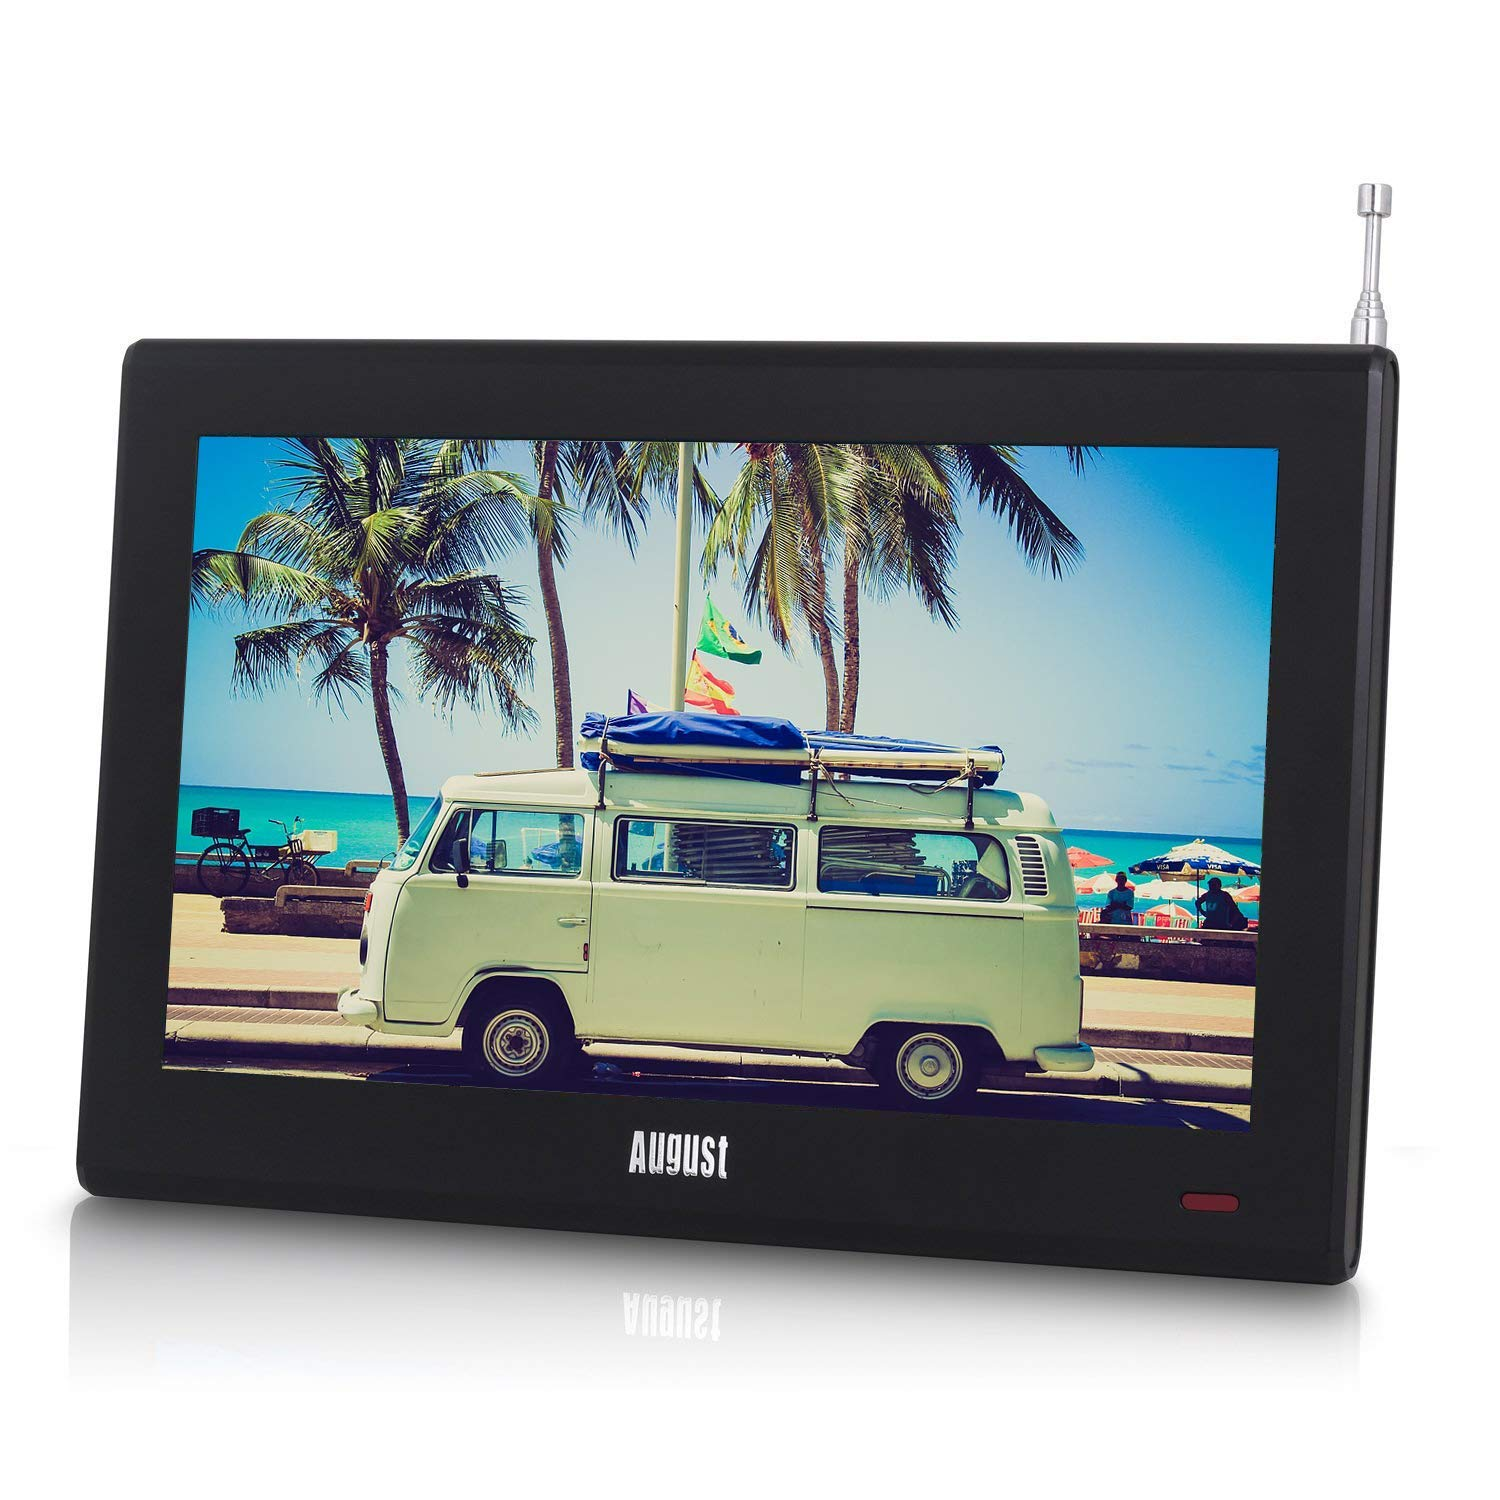 August DA100C – 10″ Portable TV with Freeview for £139.95